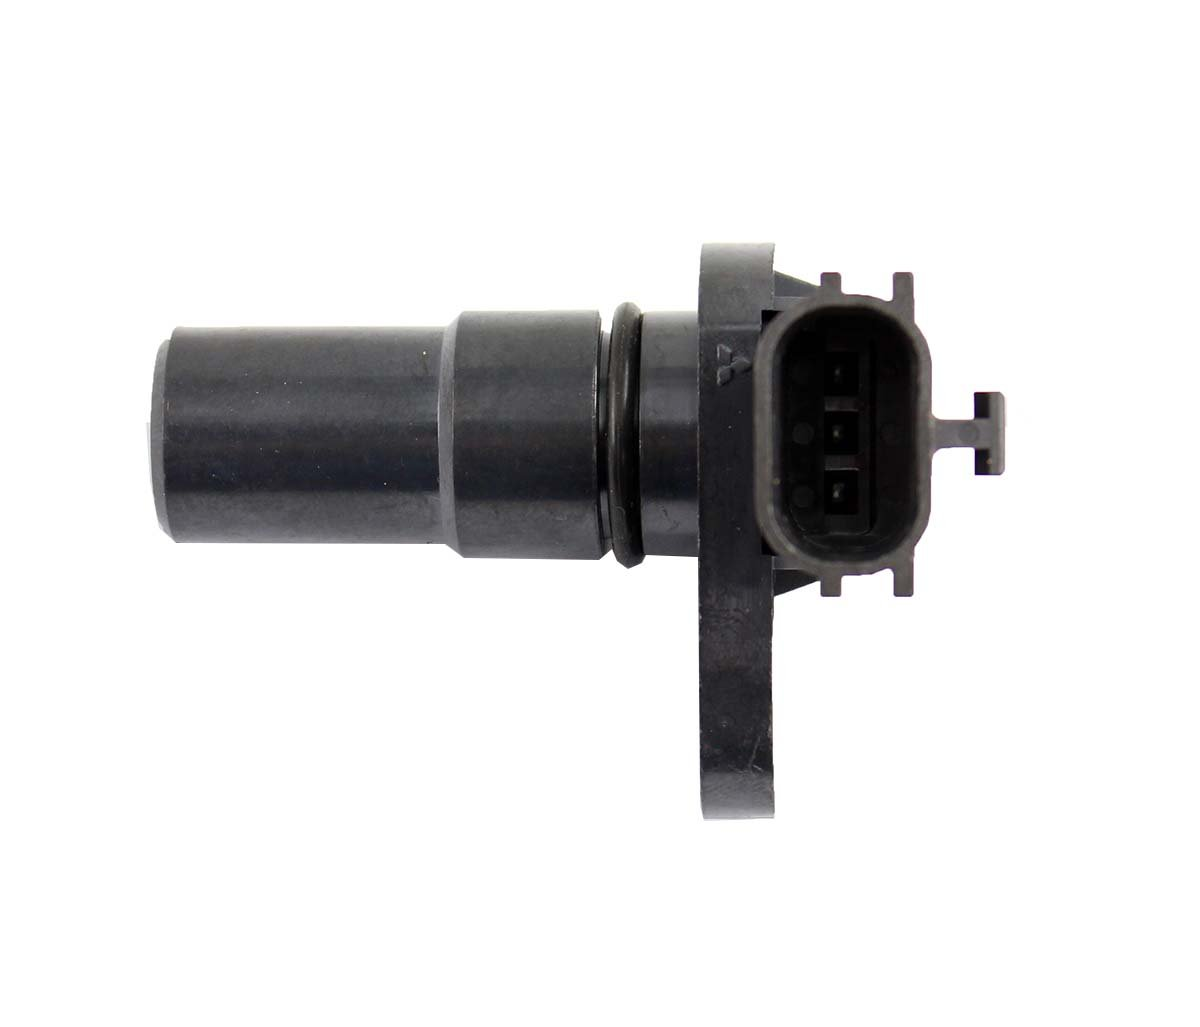 New by XtremeAmazing Trans Transmission Input Output Vehicle Speed Sensor VSS For Nissan Cube